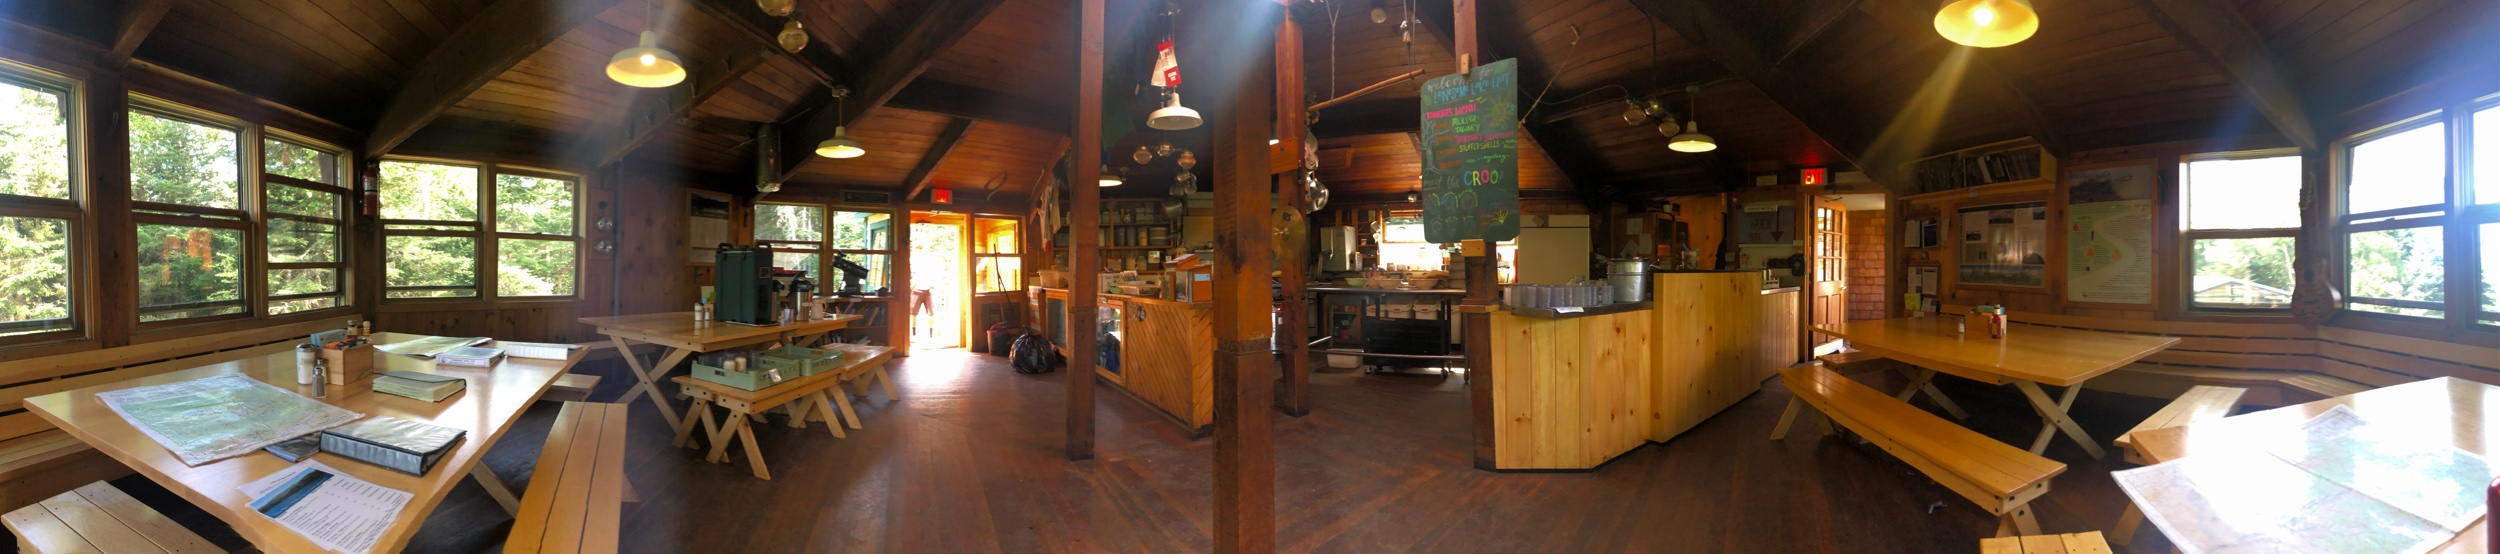 Inside the Lonesome Lake Hut